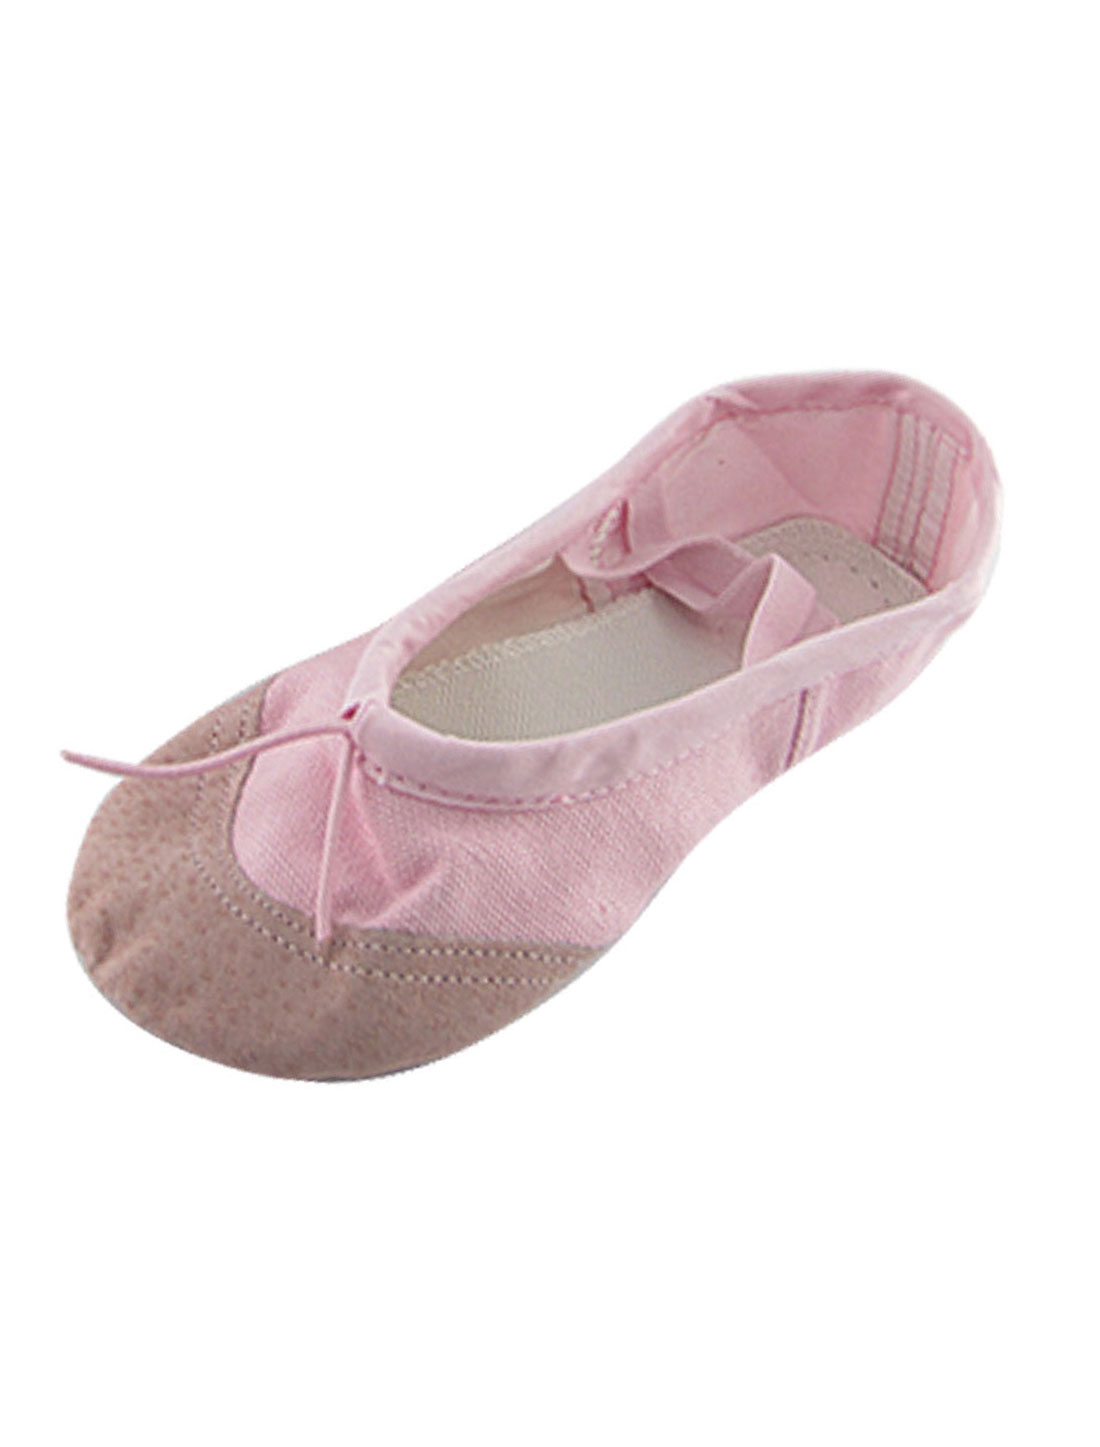 Girls US Size 13.5 Pink Canvas Crossover Elastic Bands Flat Dancing Ballet Shoes